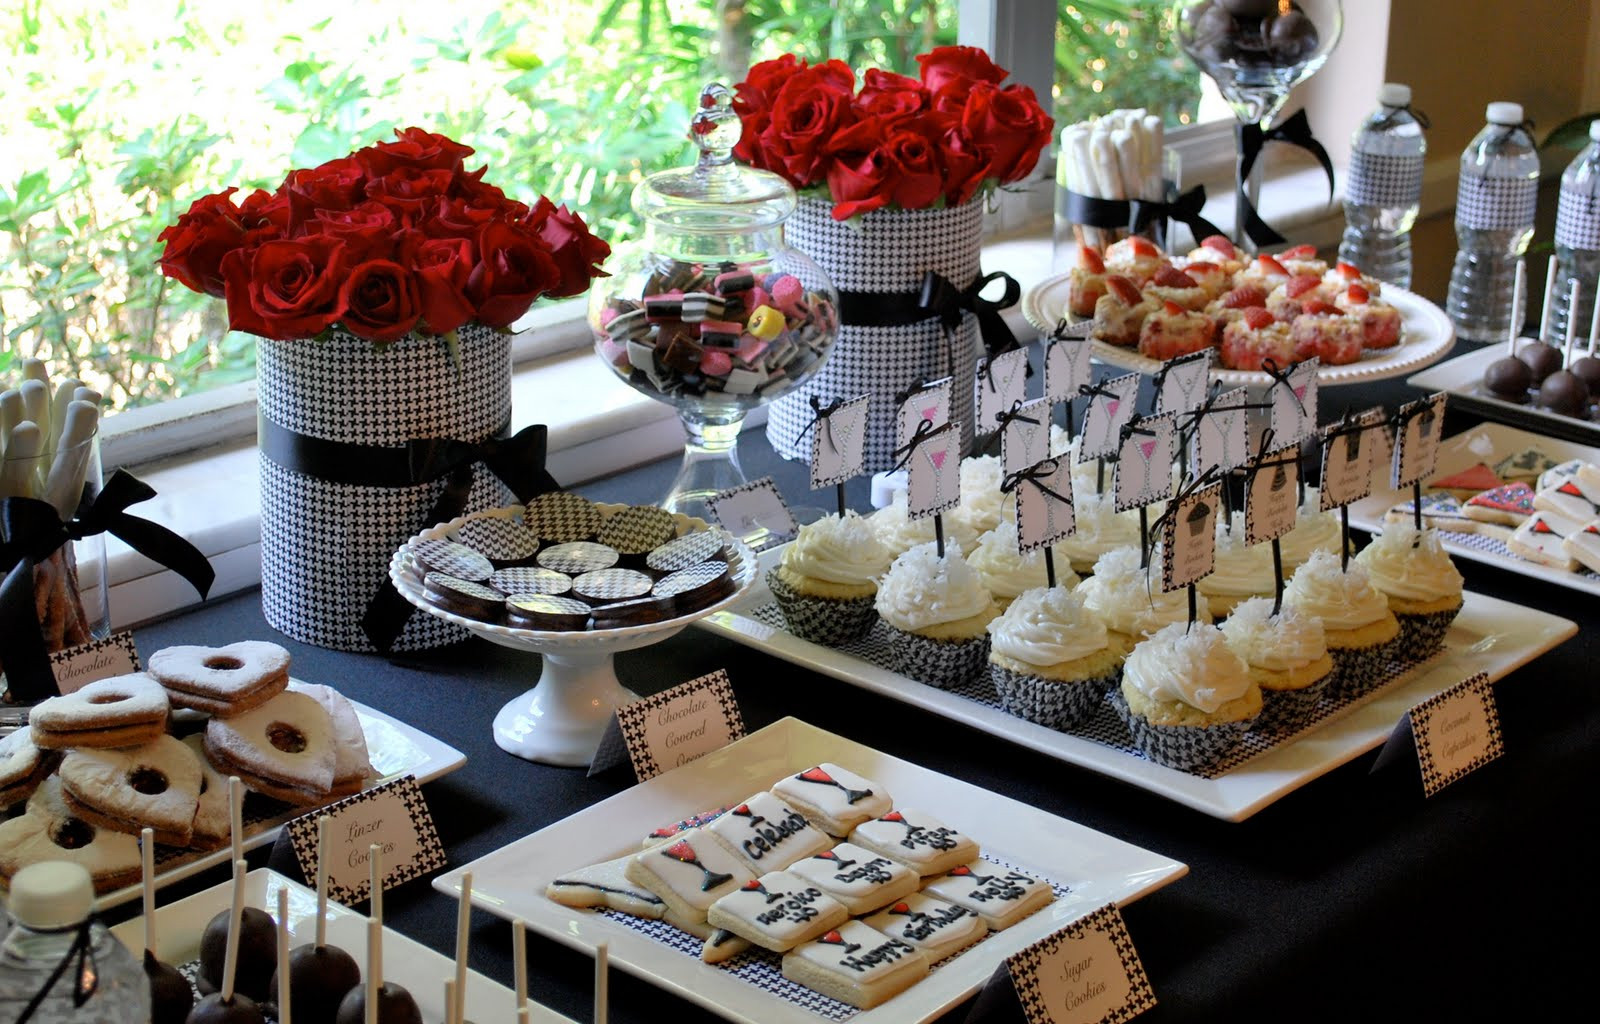 Best ideas about Adult Birthday Party Themes . Save or Pin 40th Birthday Party Ideas Adult Birthday Party Ideas Now.